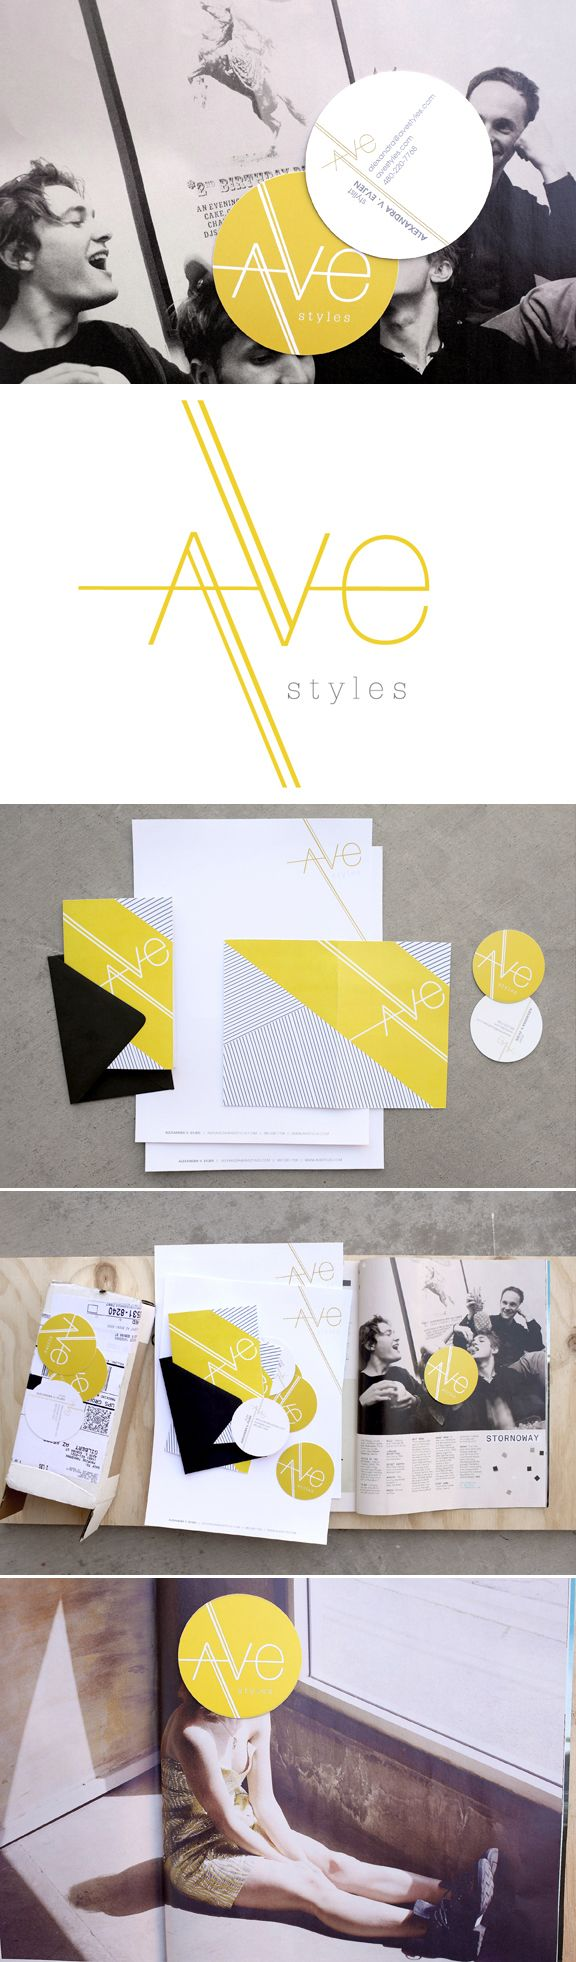 Ave Styles branding by Promise Tangeman